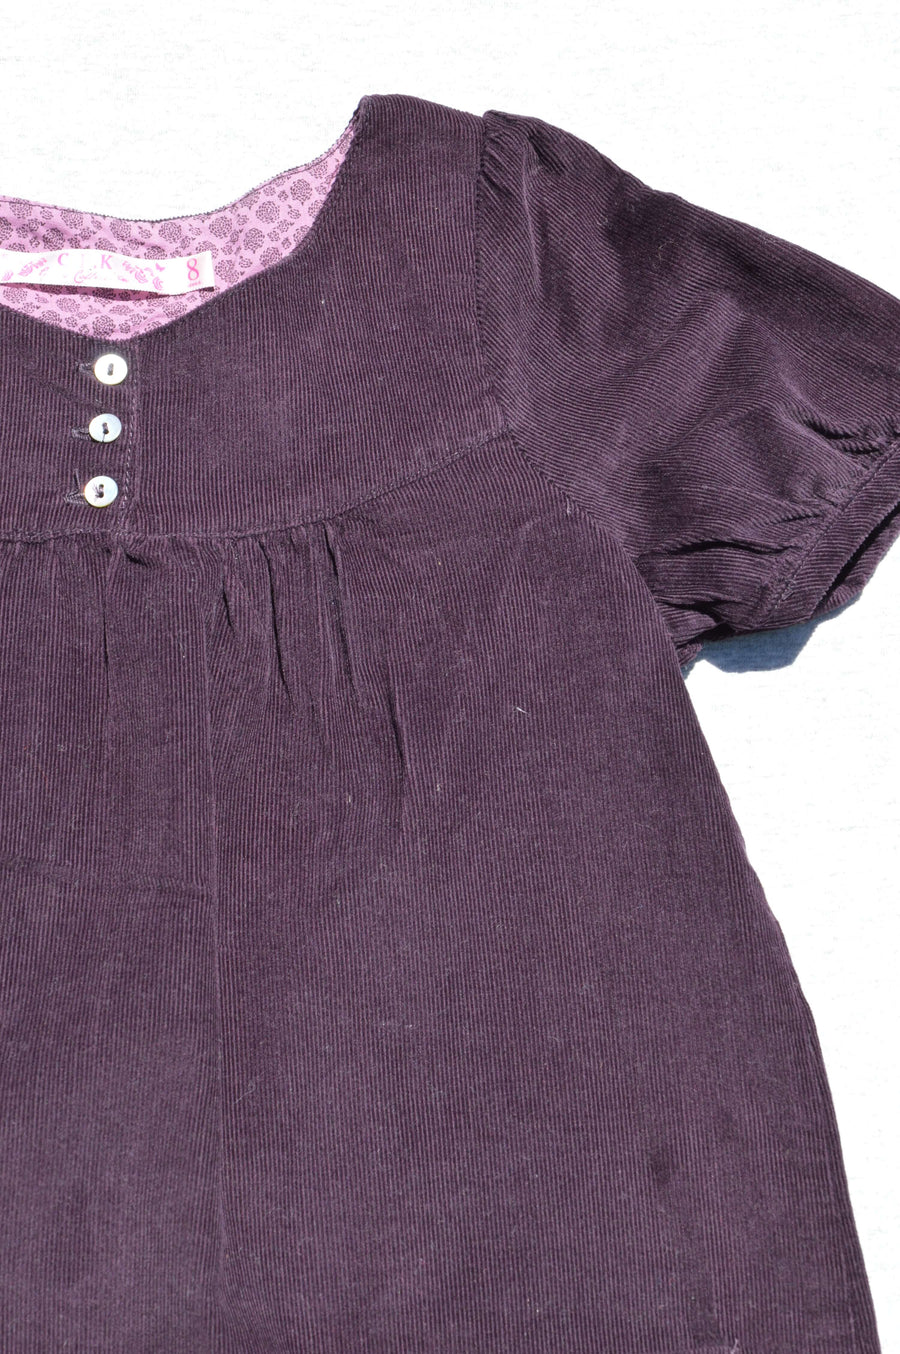 C.F.K - nearly new - dark aubergine corduroy pinafore dress, size 8